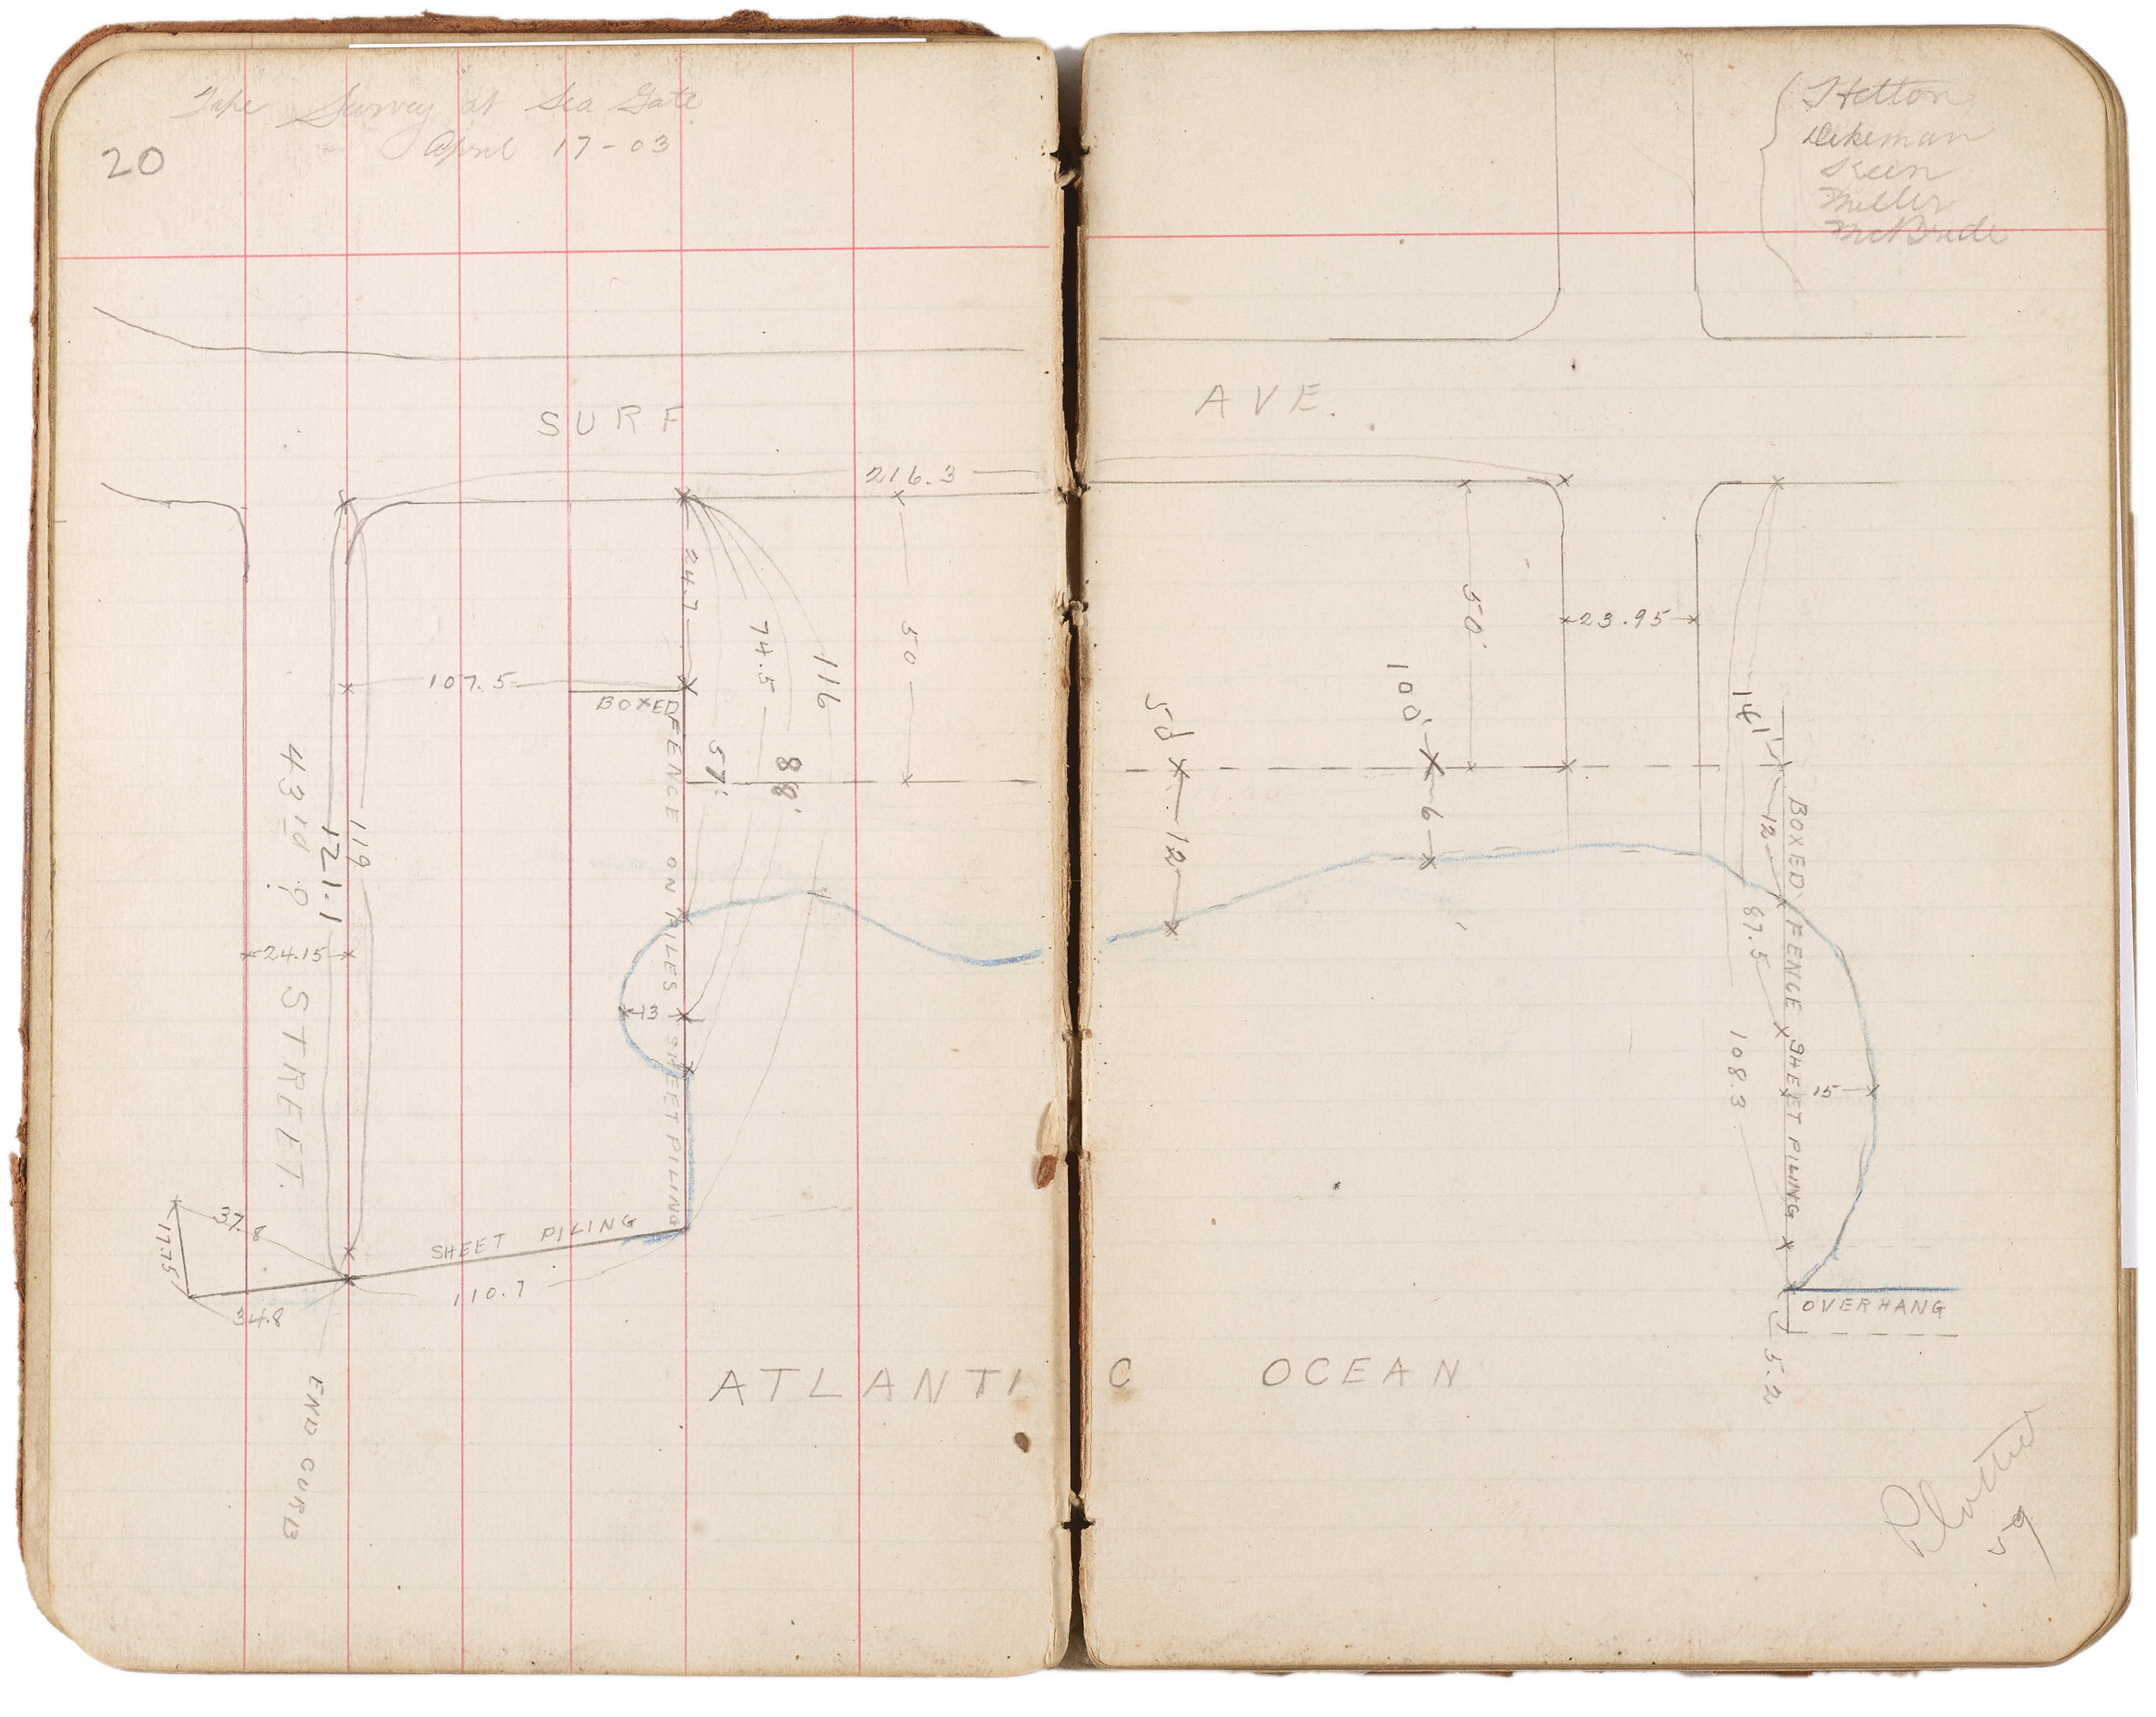 This small map was drawn on April 17, 1903 and is contained in the first notebook pictured above. The names of the survey team are visible in the top right corner. It depicts a section of Seagate right along Surf Avenue. Department of Ports and Trade Collection, NYC Municipal Archives.